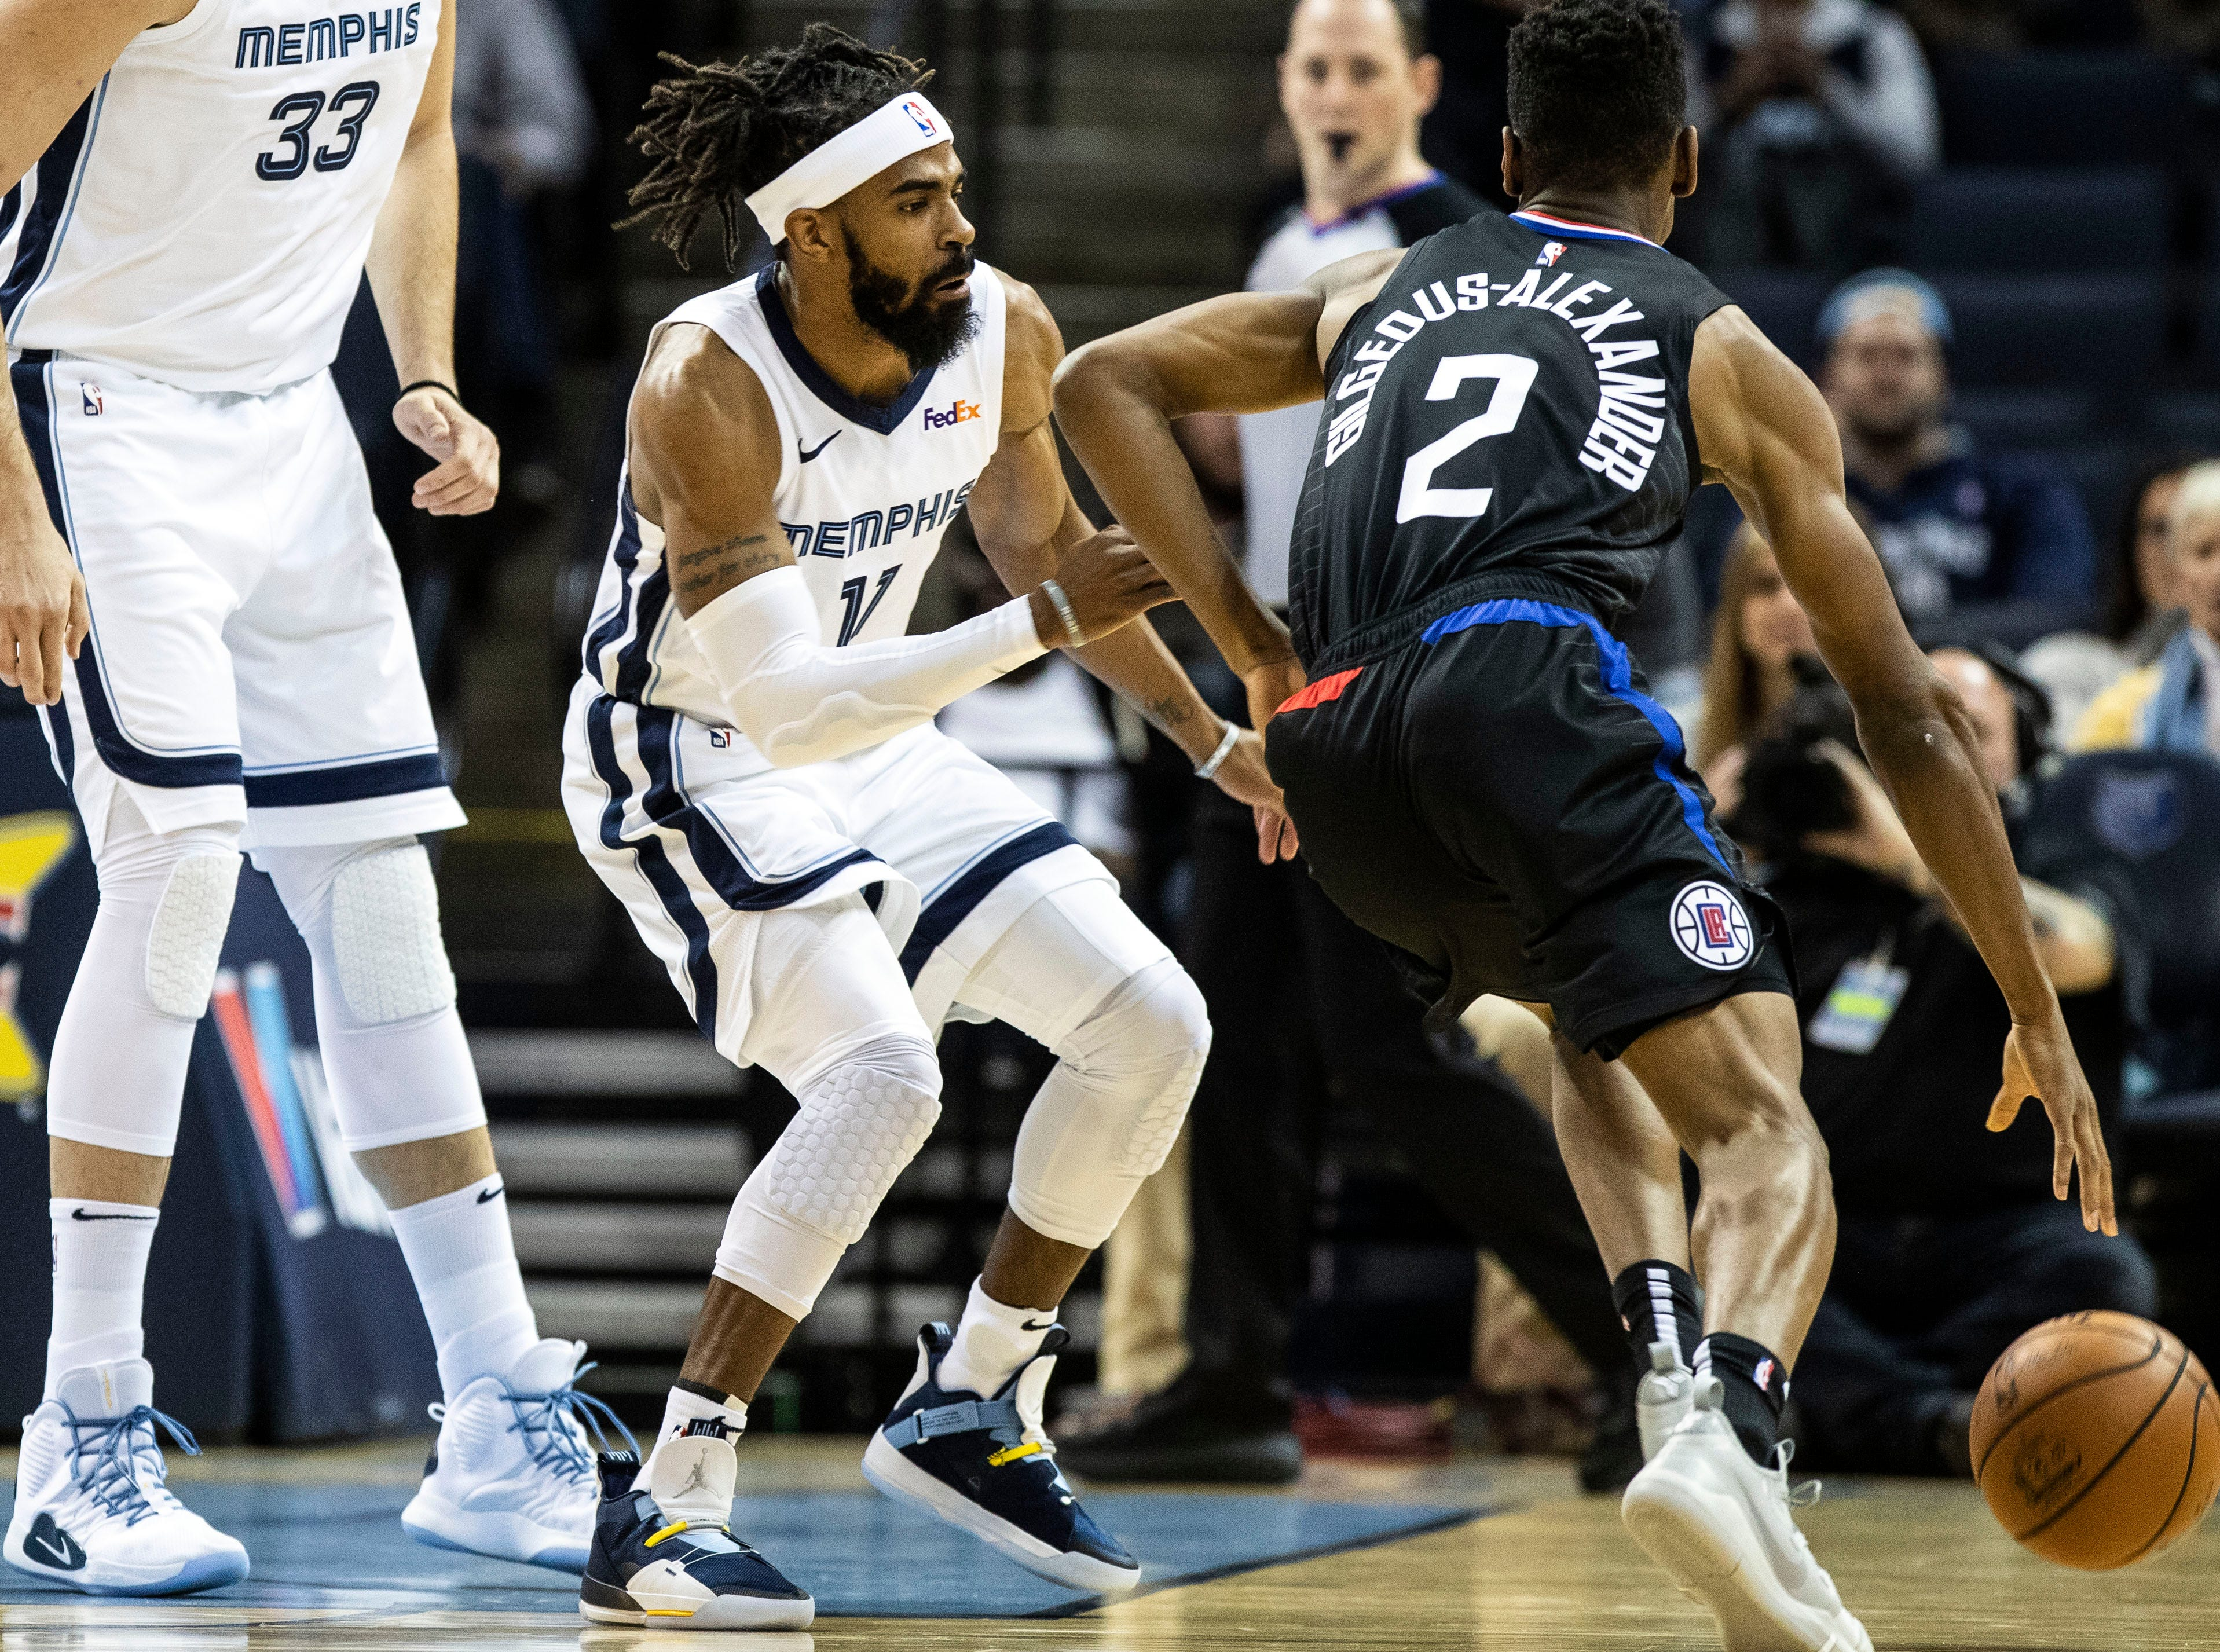 Memphis Grizzles guard Mike Conley (11) blocks Los Angeles Clippers guard Shai Gilgeous-Alexander (2) during a NBA basketball game in the Fedex Forum, Wednesday, Dec. 5, 2015.